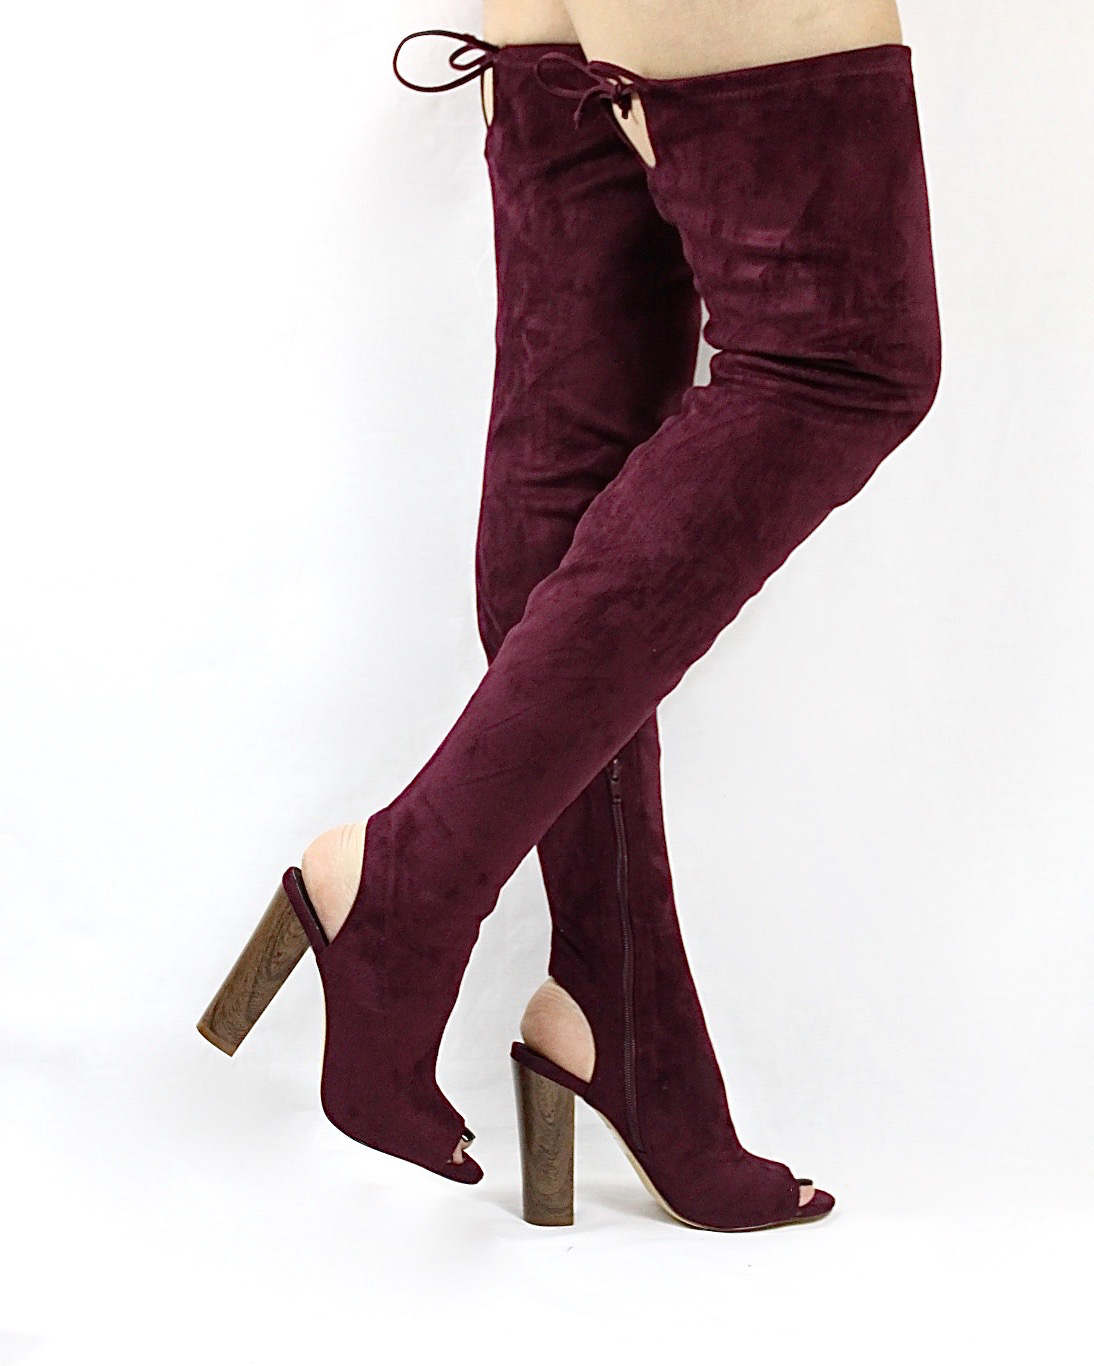 Liliana Sage-44 Plum Over the Knee Thigh High Open Toe Boots-0